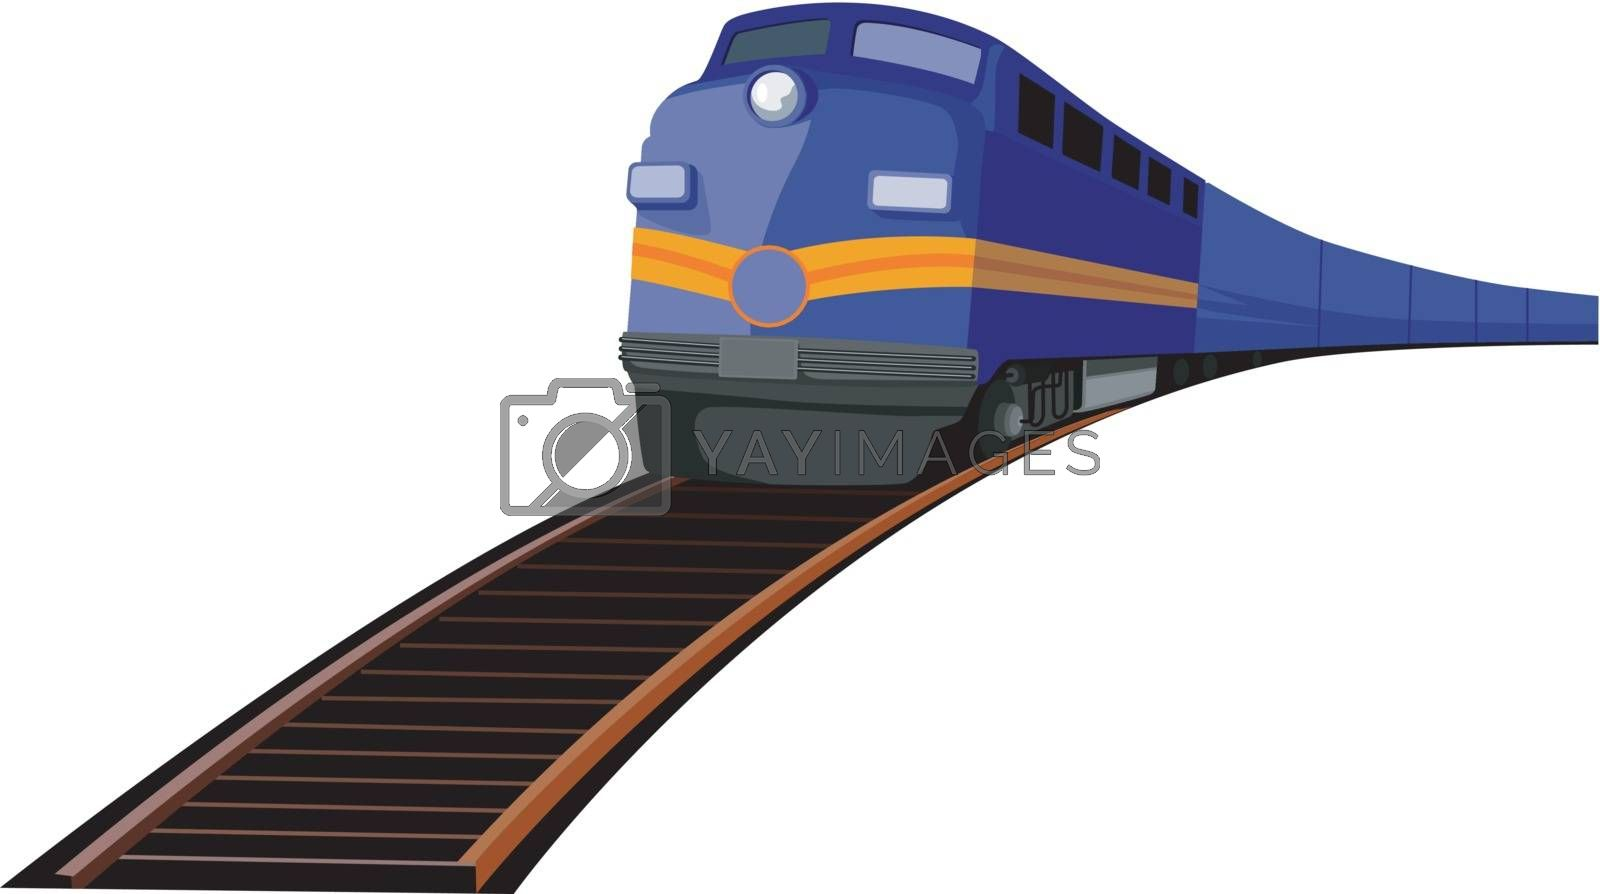 Illustration of a train heading front isolated on white background done in retro style.